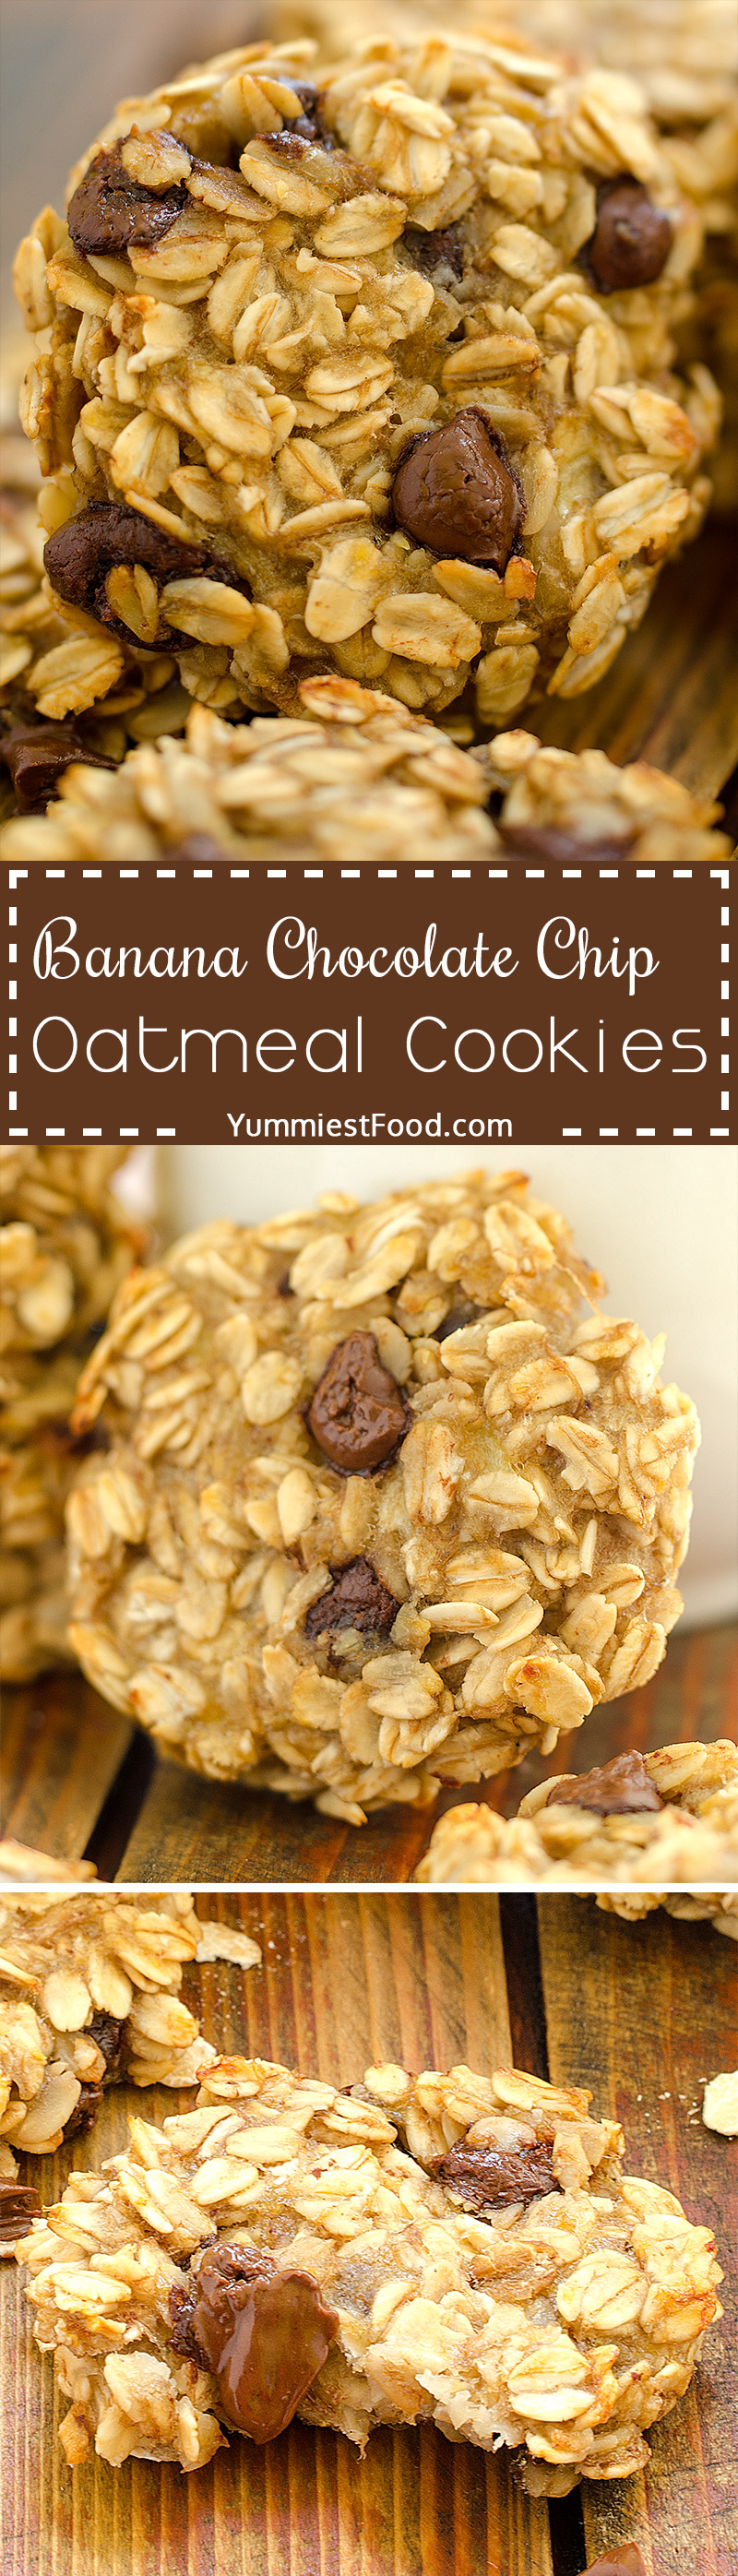 Banana Chocolate Chip Oatmeal Cookies – very quick and easy to make with only three ingredients.